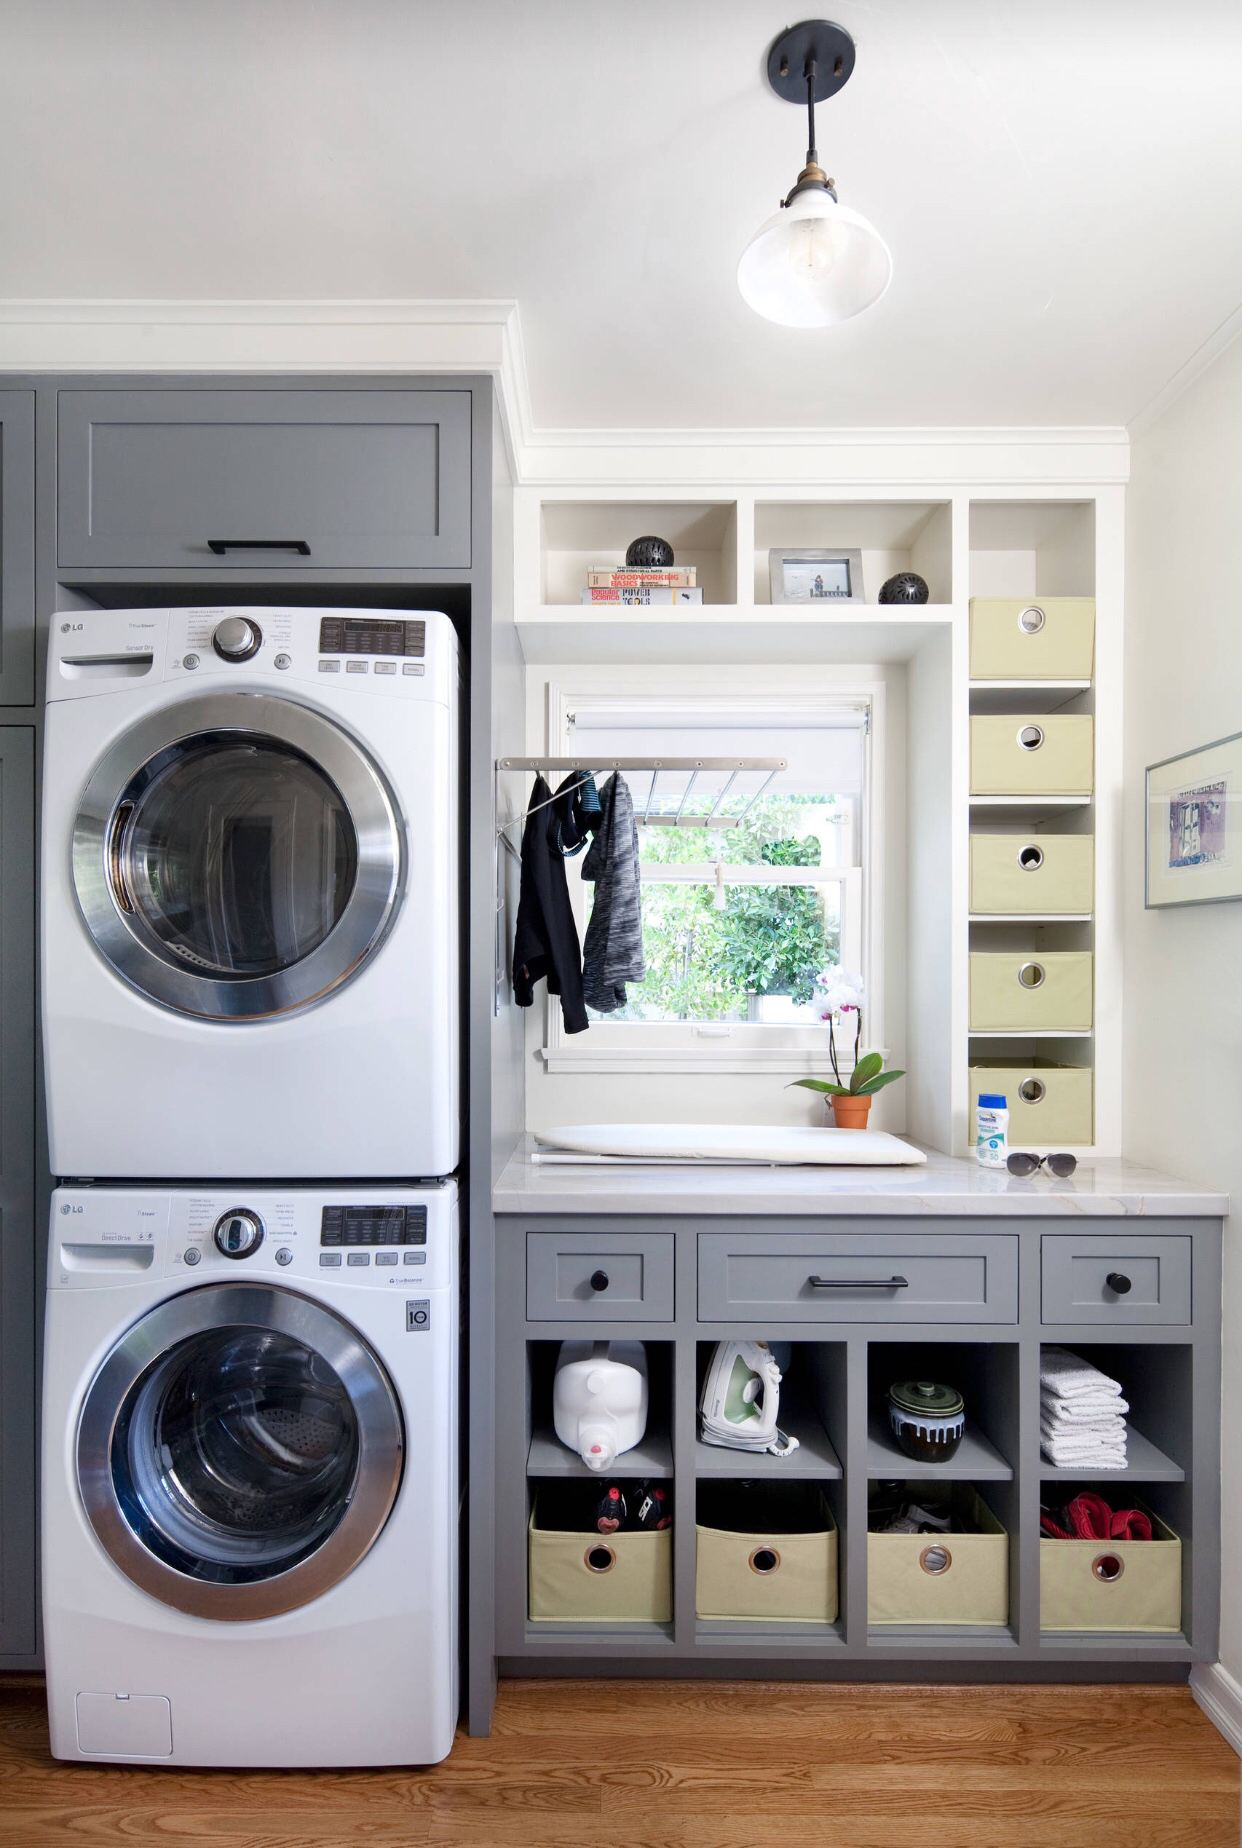 50 Beautiful and Functional Laundry Room Ideas | Homelovr on Small Laundry Room Cabinets  id=46030